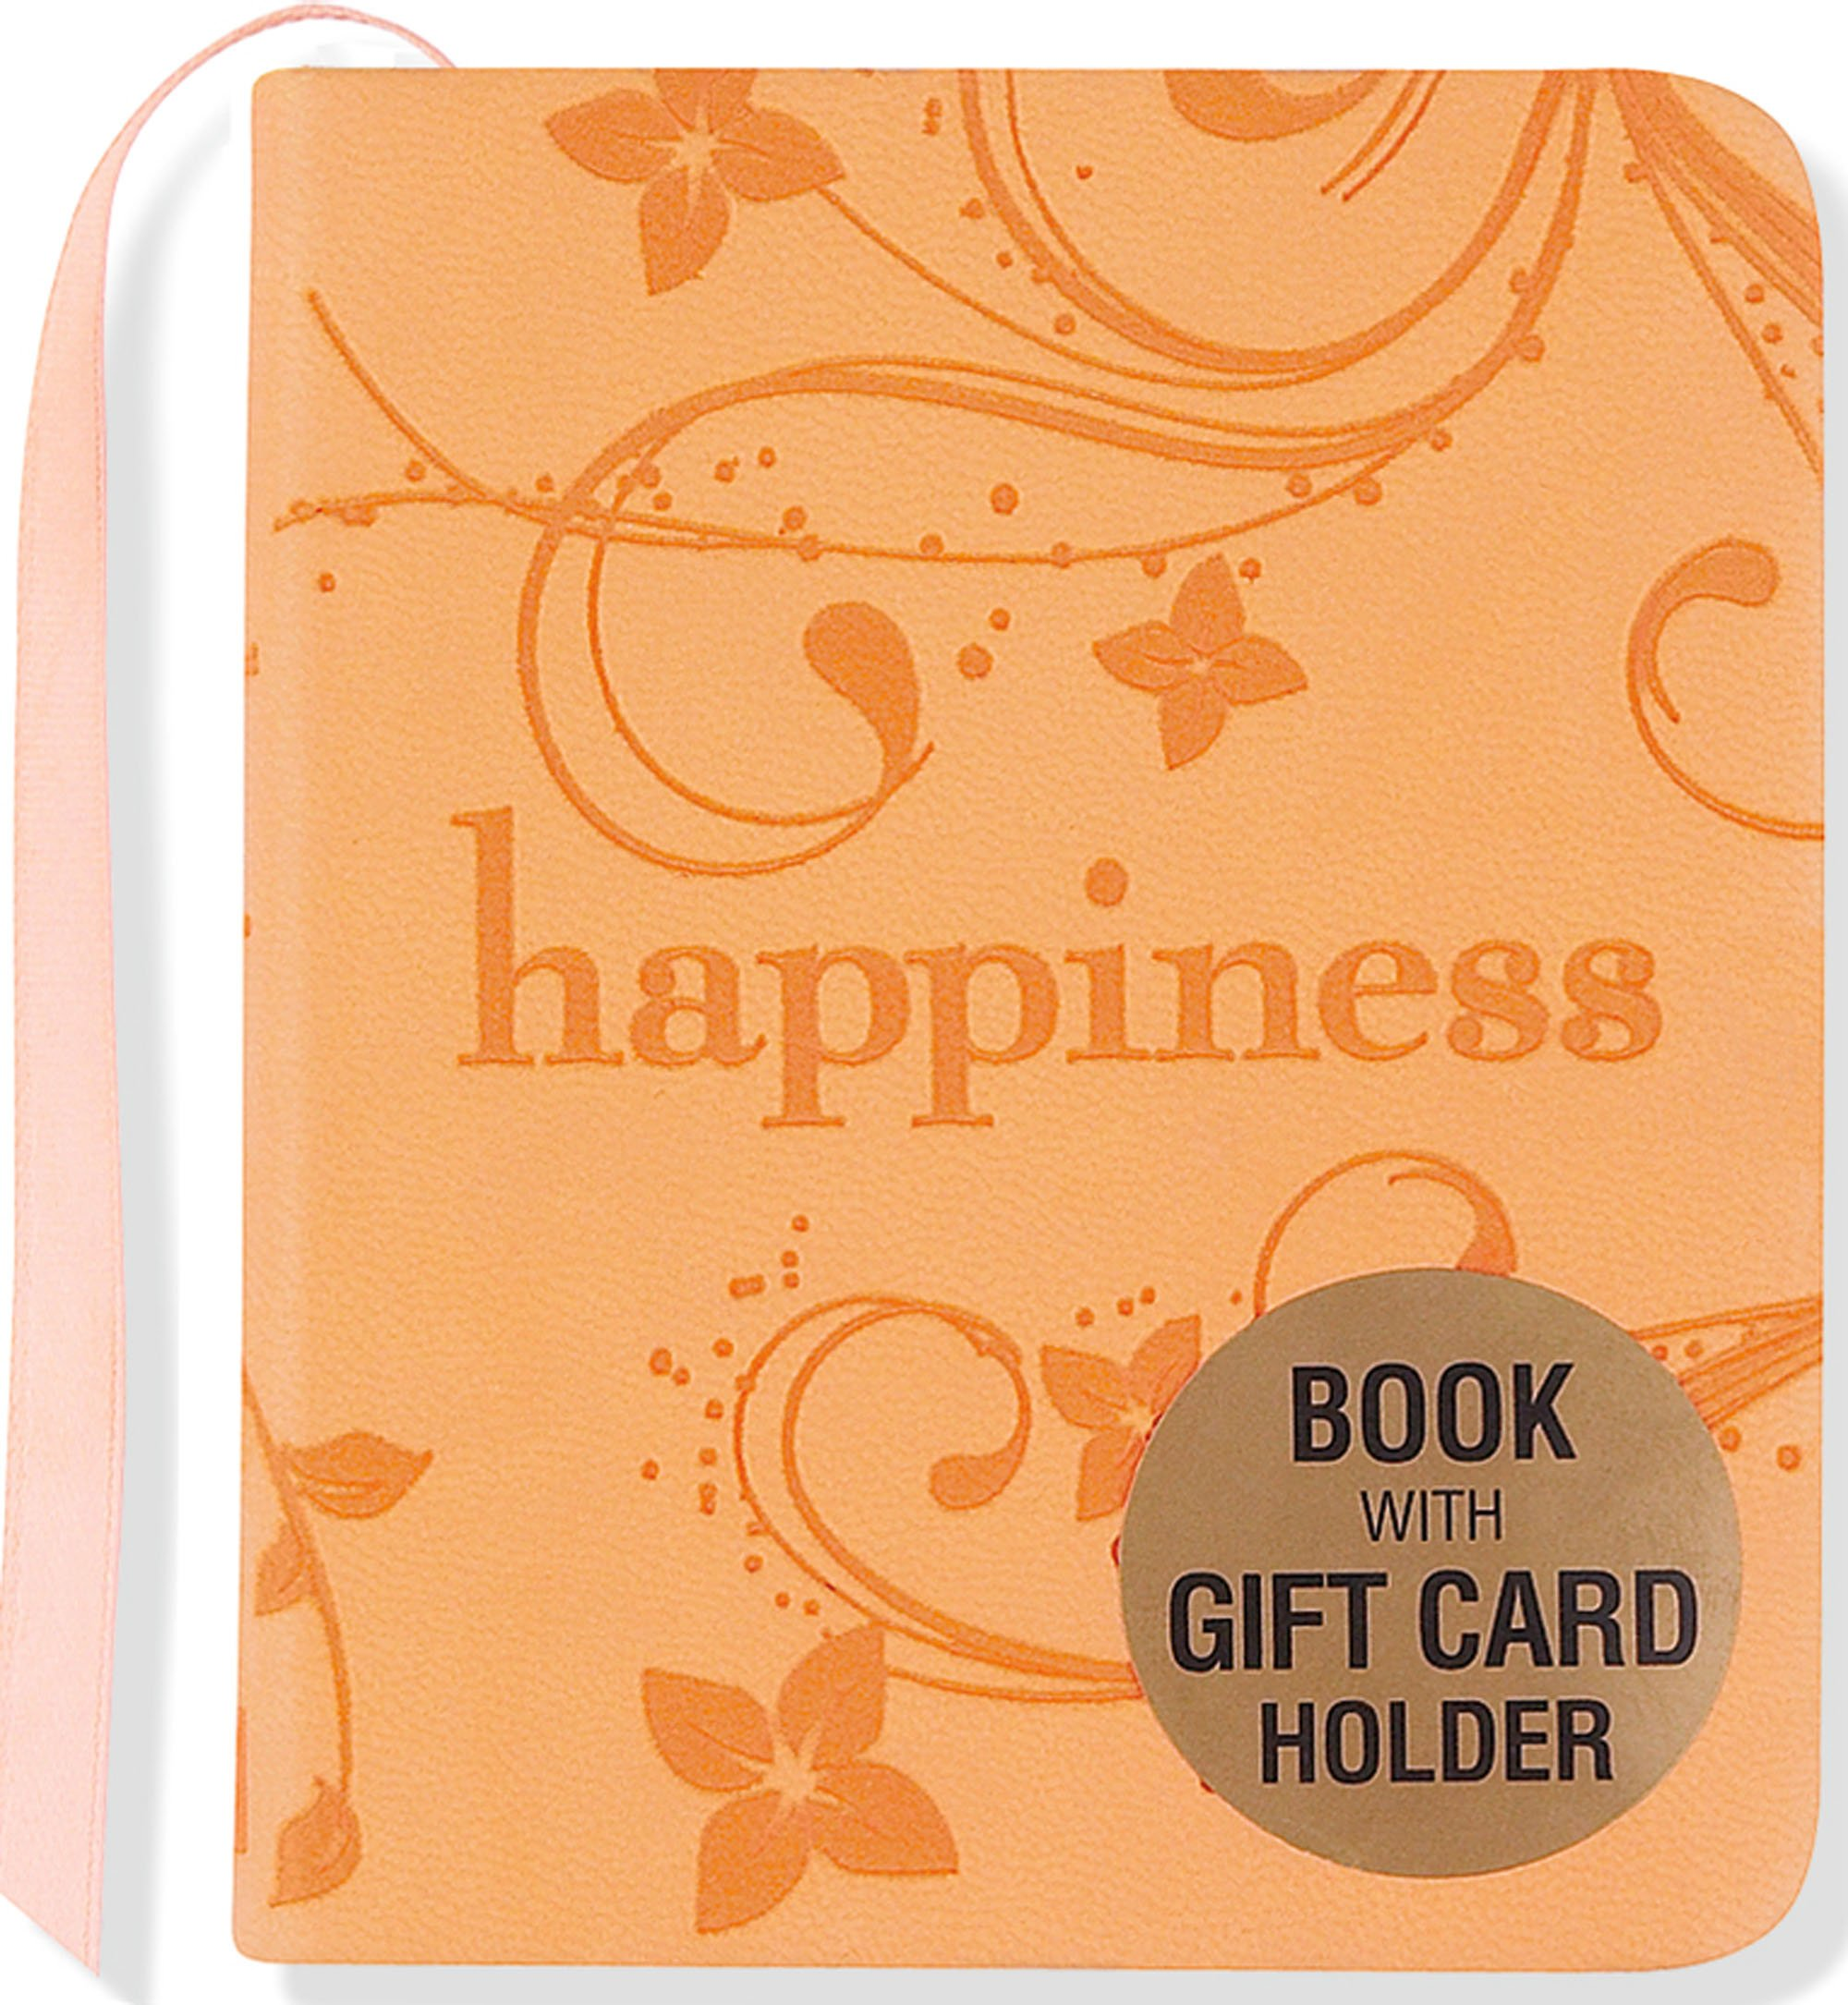 Happiness mini book gift card holder evelyn beilenson happiness mini book gift card holder evelyn beilenson 9781593597757 amazon books negle